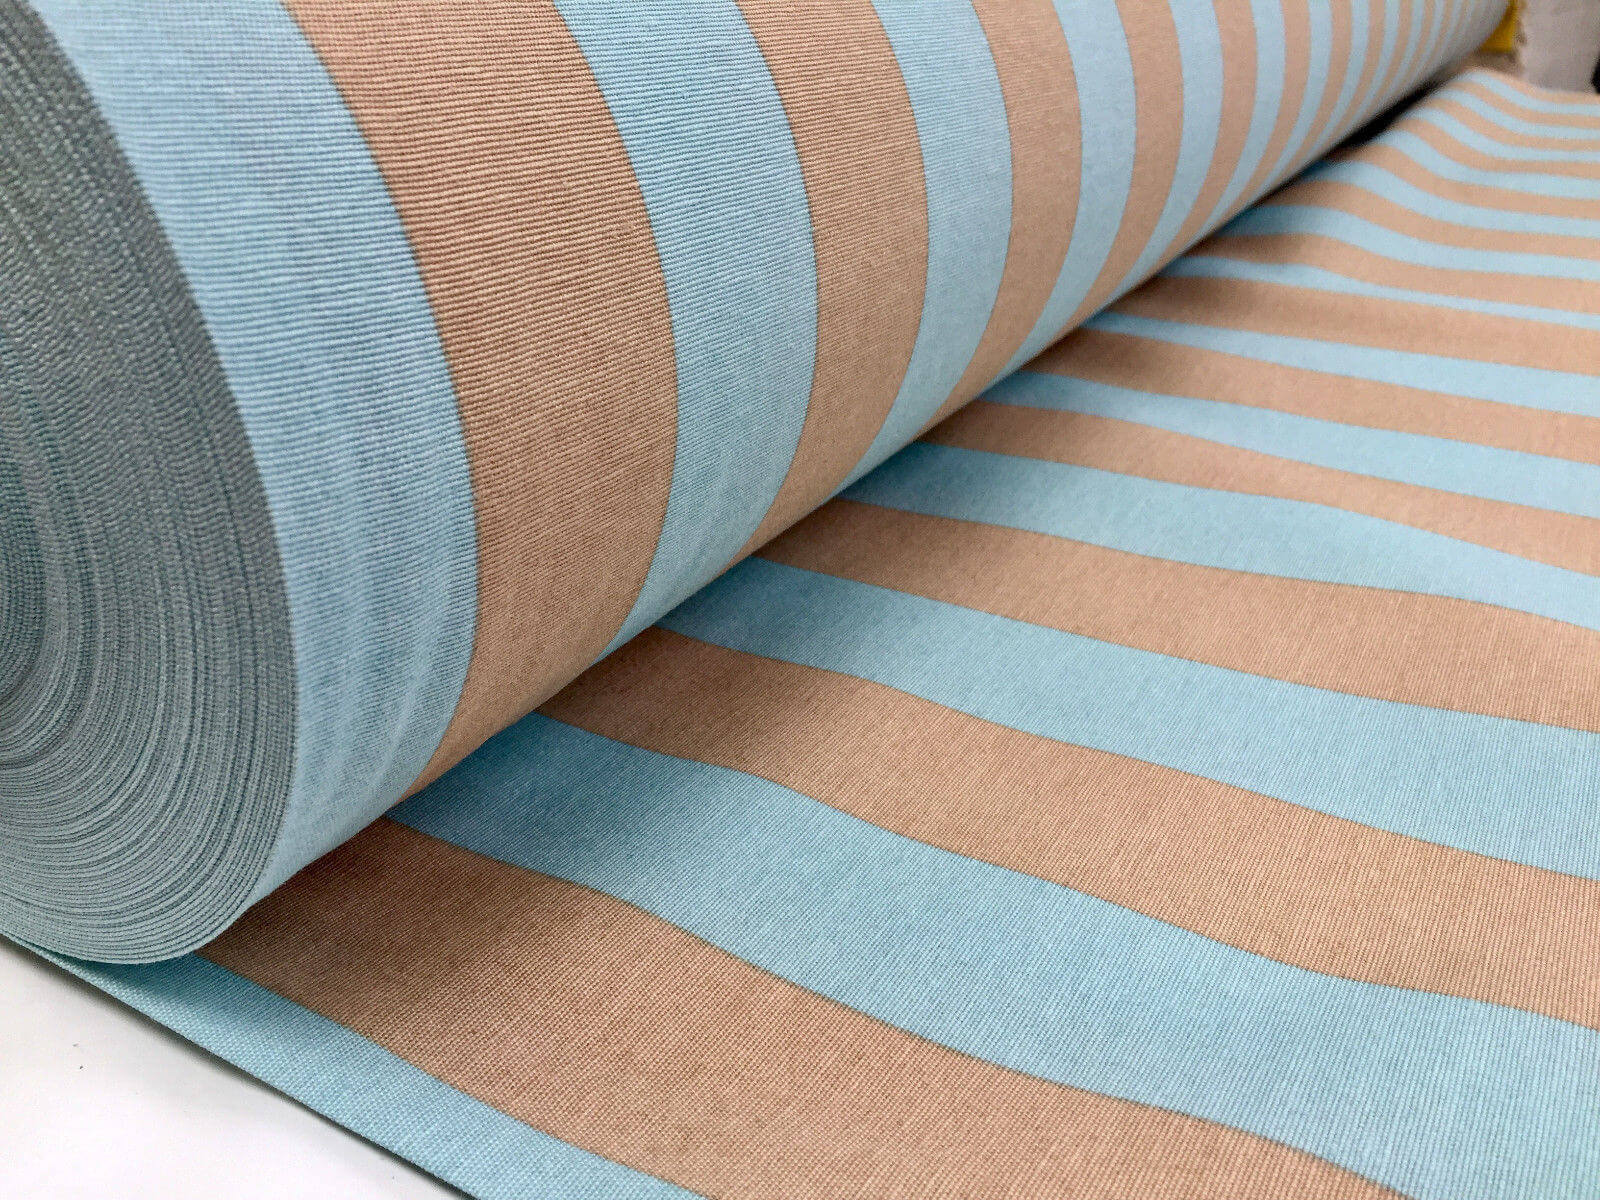 aqua-beige-stripe-fabric-sofia-stripes-curtain-upholstery-striped-material-280cm-extra-wide-5aad4dd01.jpg